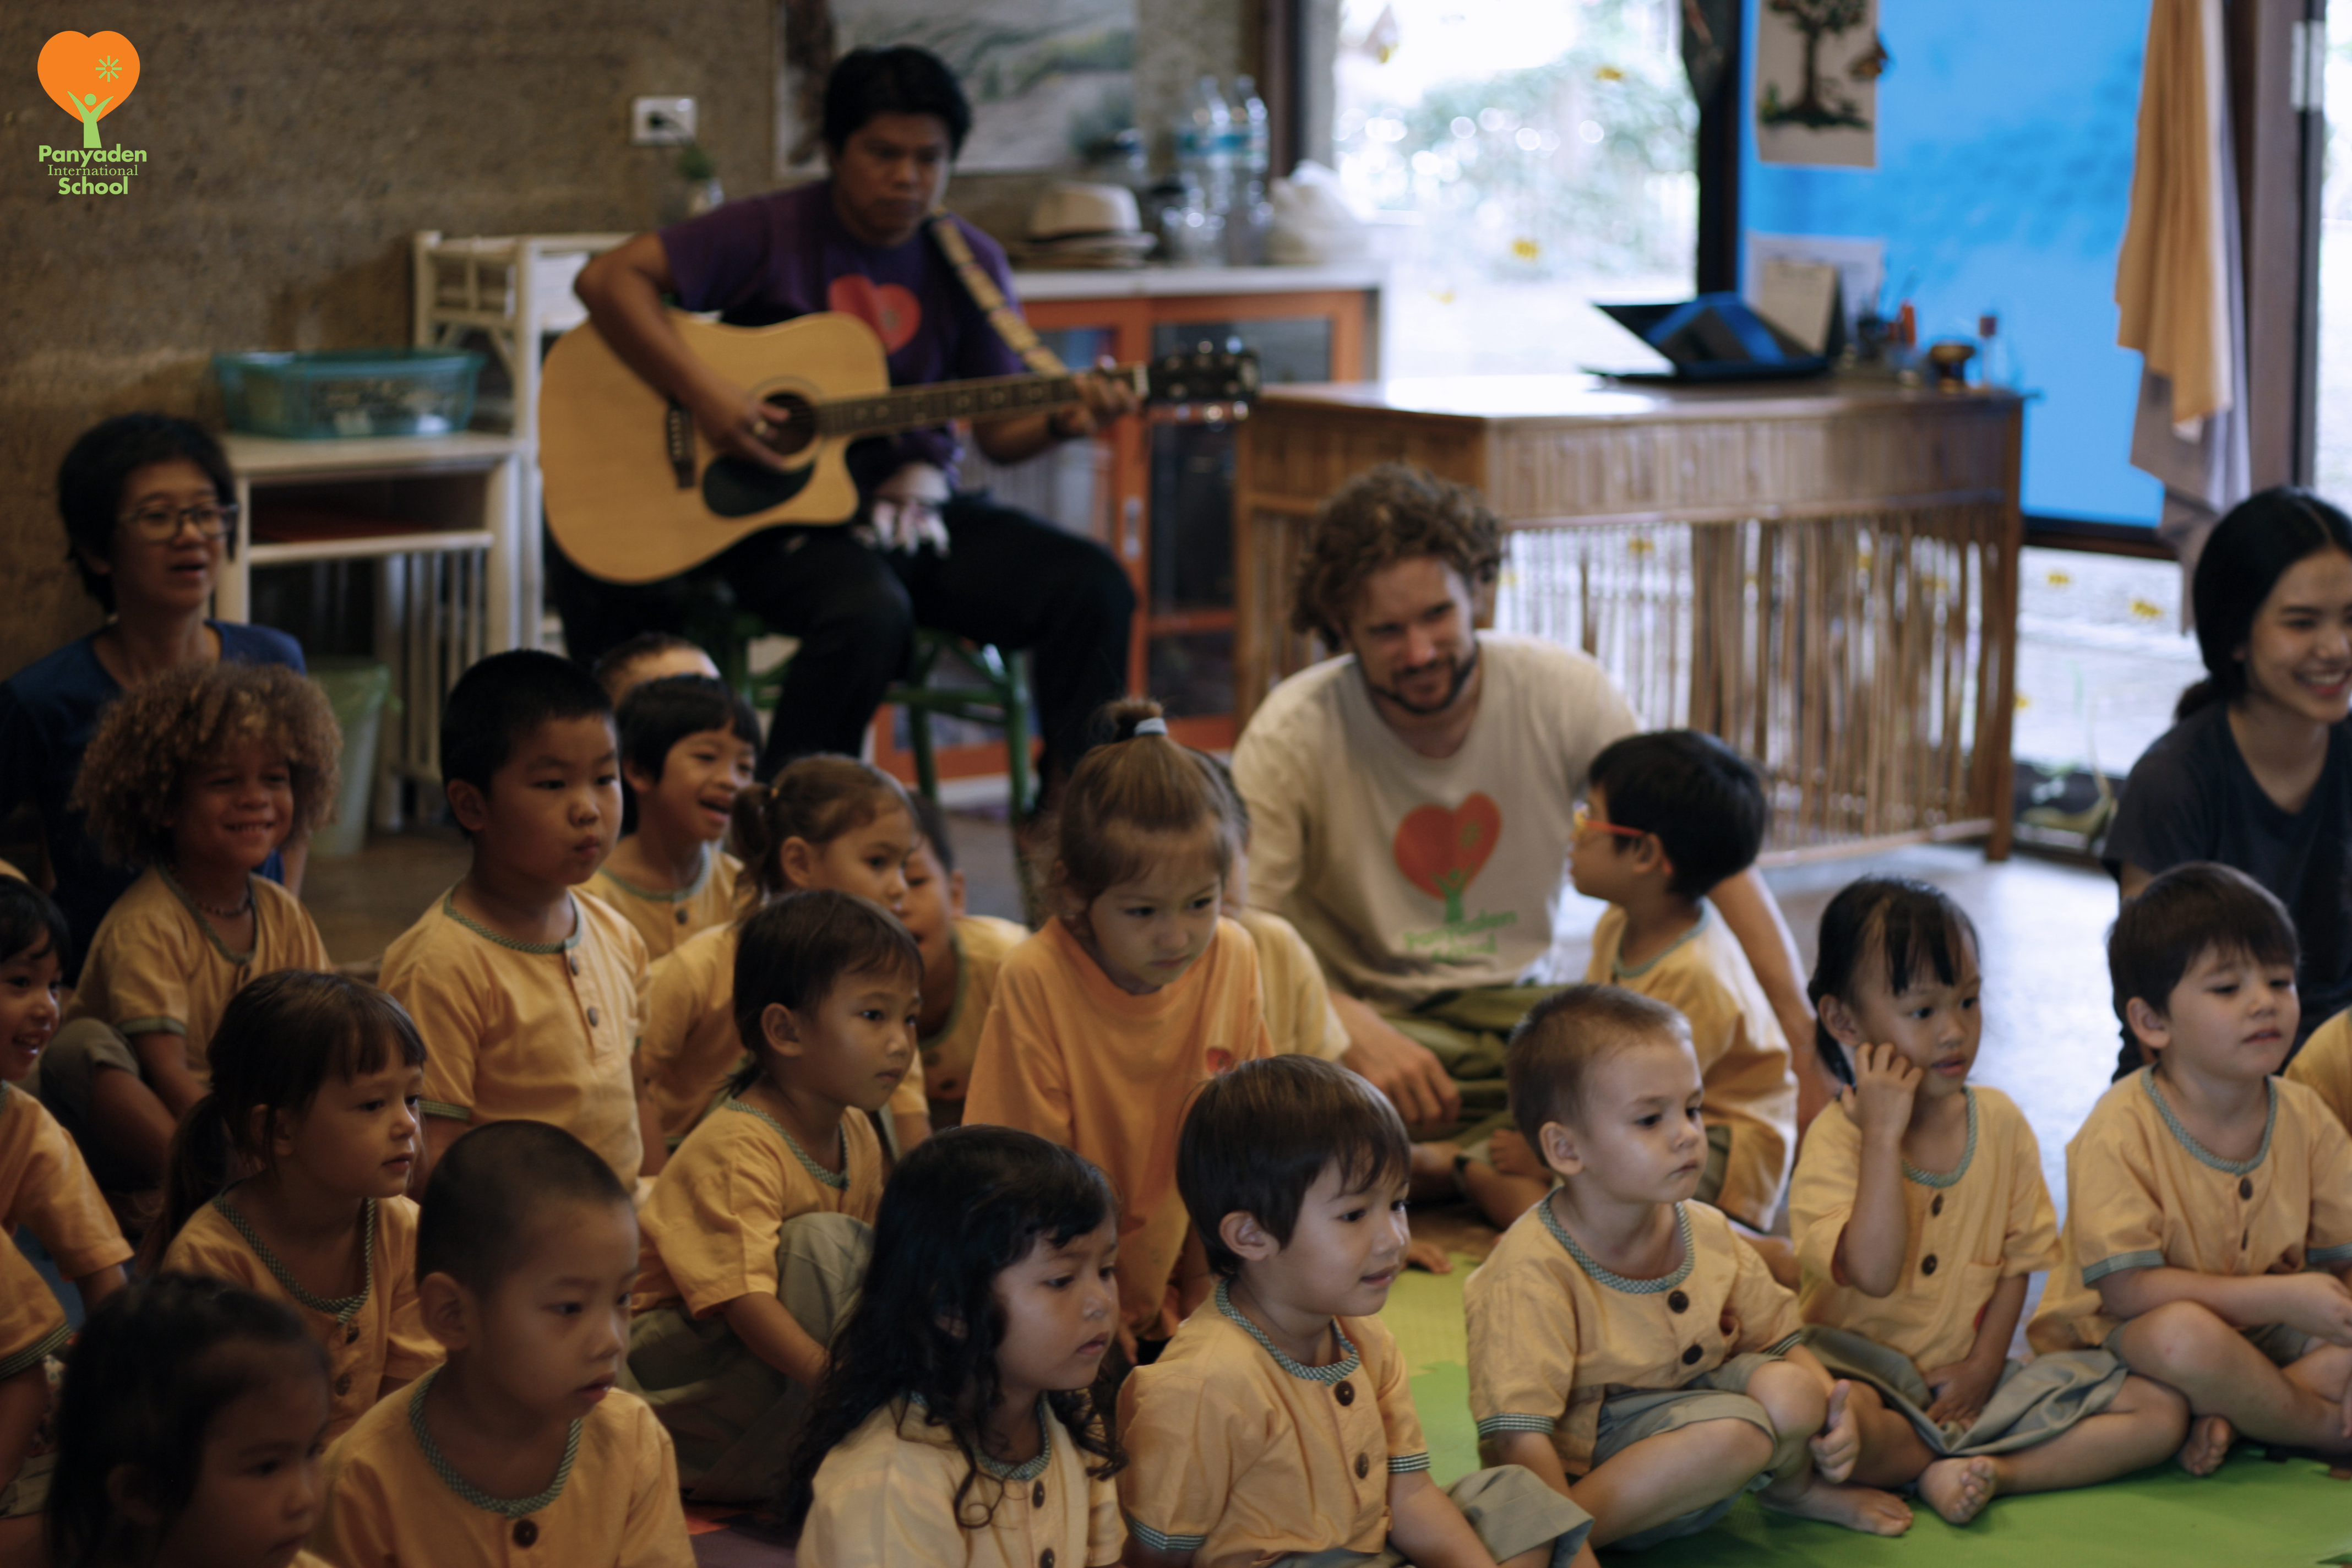 _MG_8998-logo Nursery and kindergarten children at Panyaden's 12 Wise Habits session